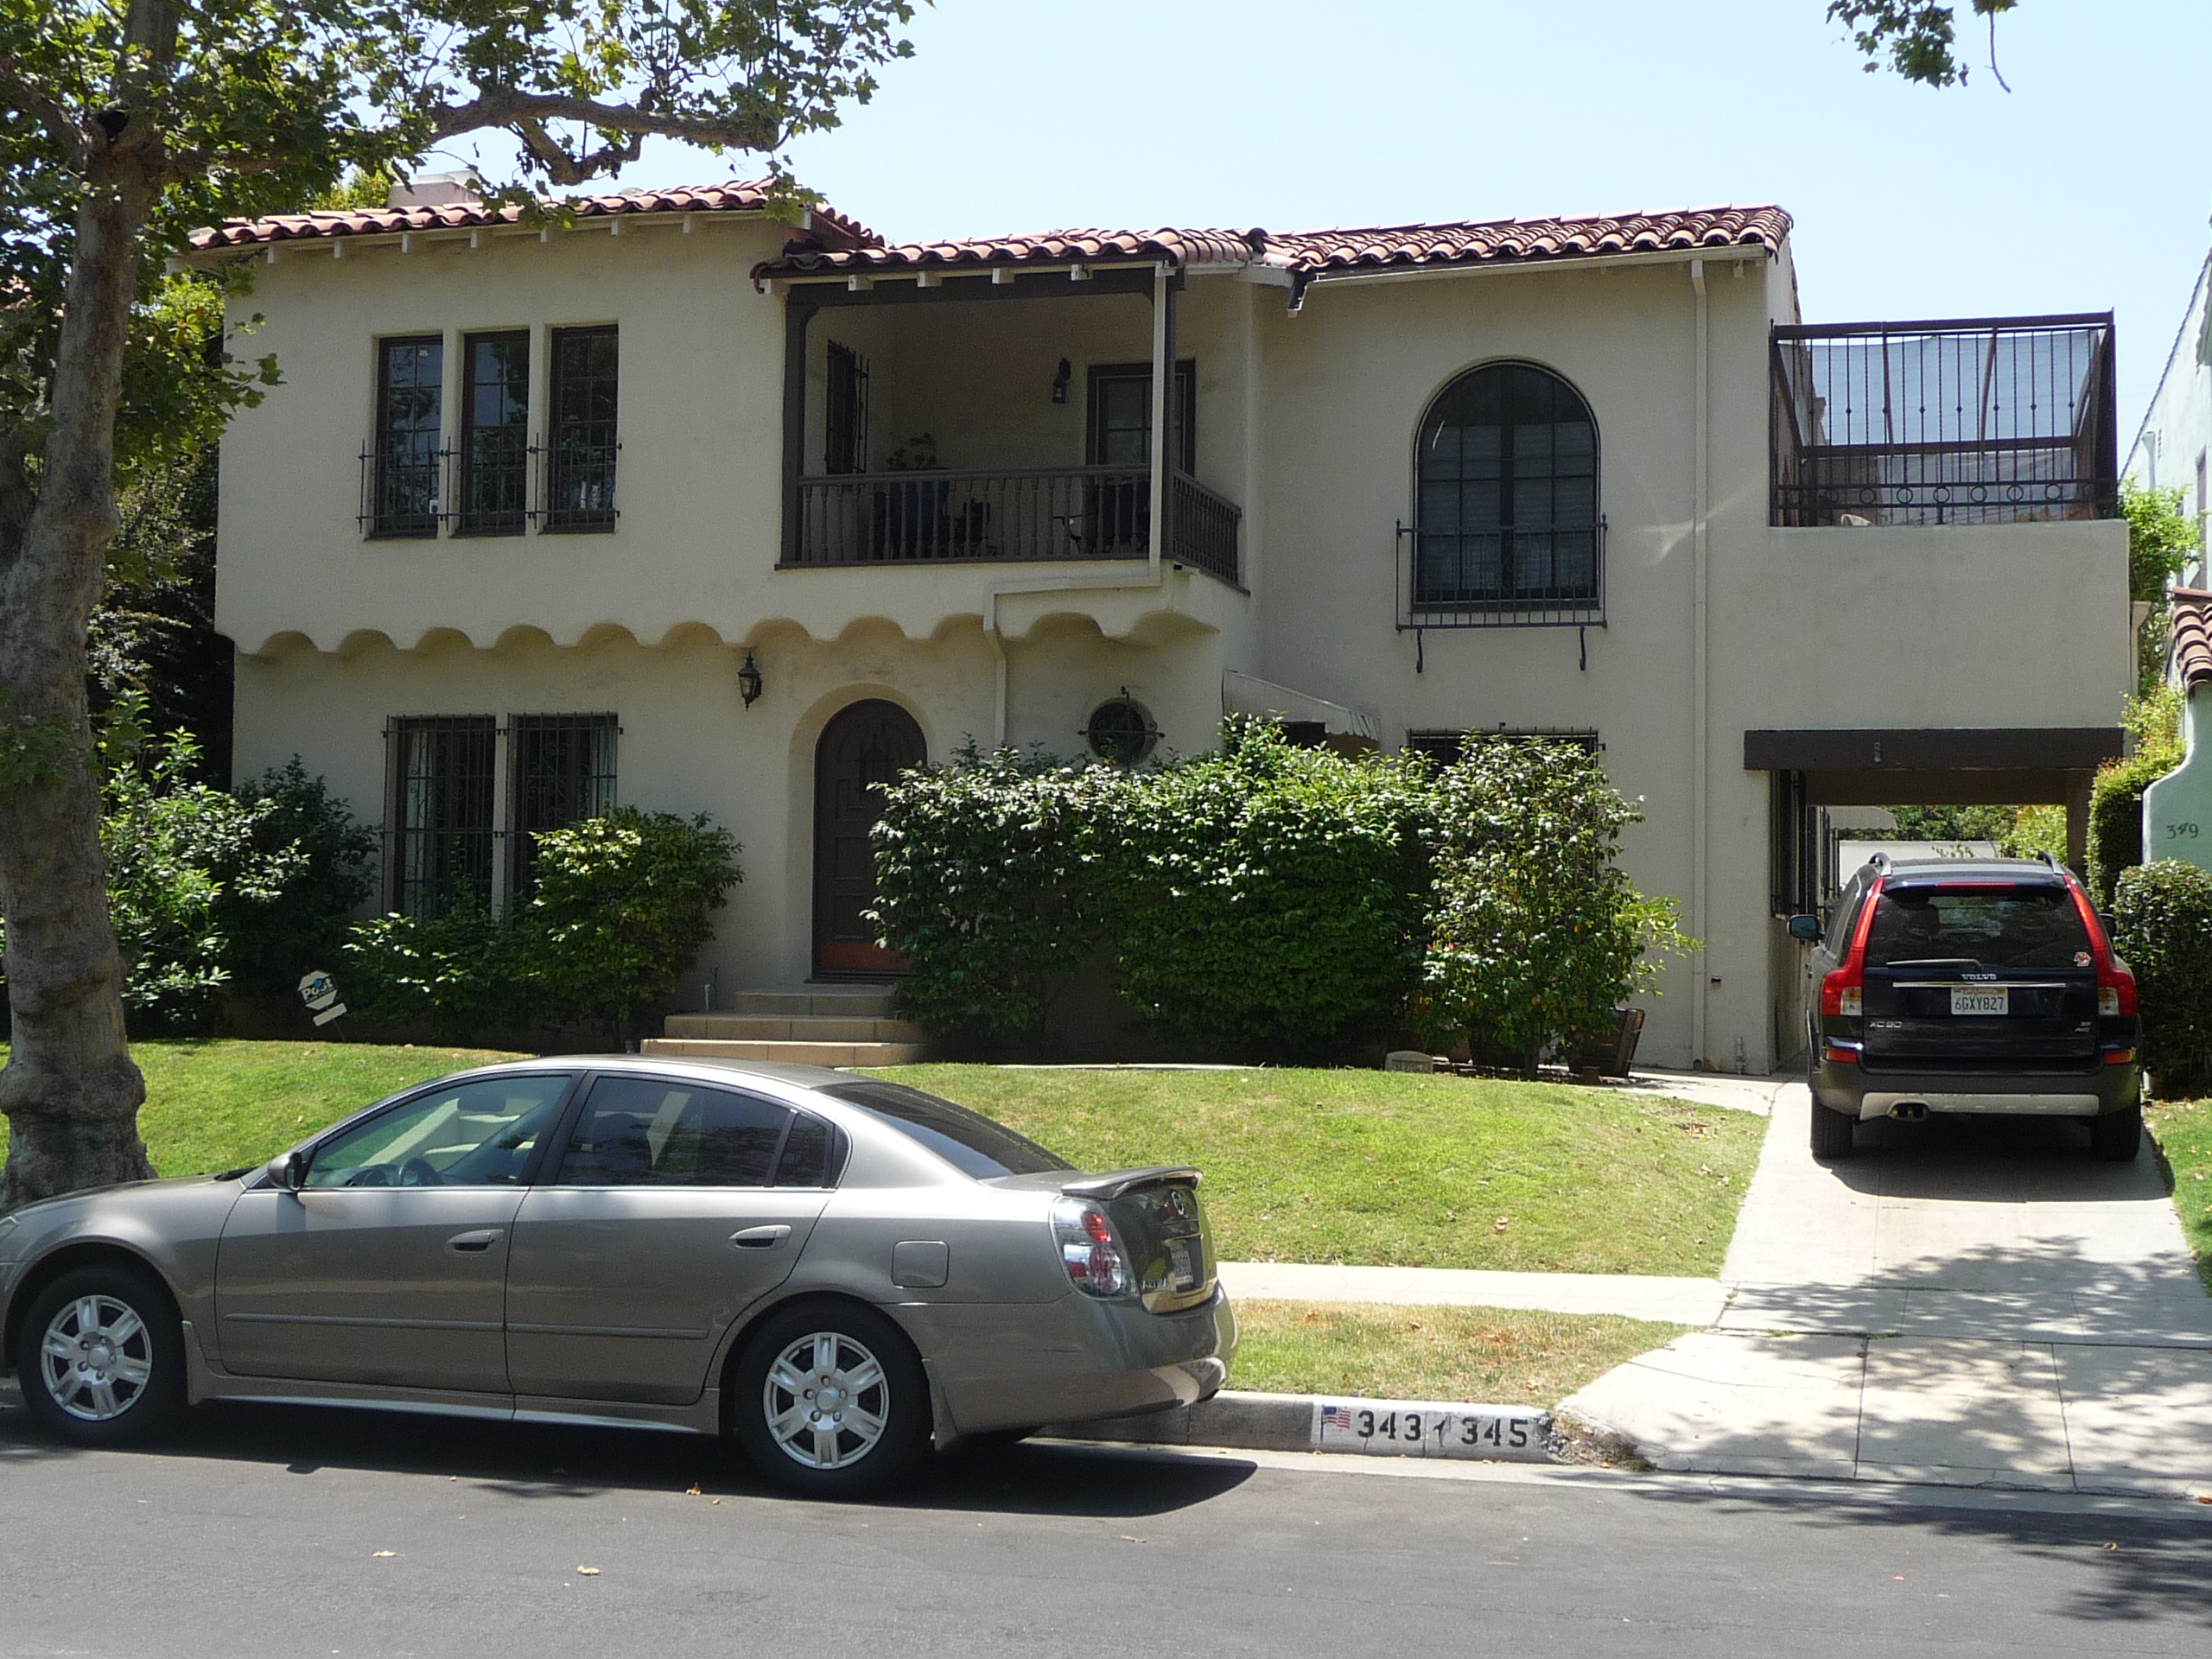 343 N MANSFIELD AVE - PHOTO